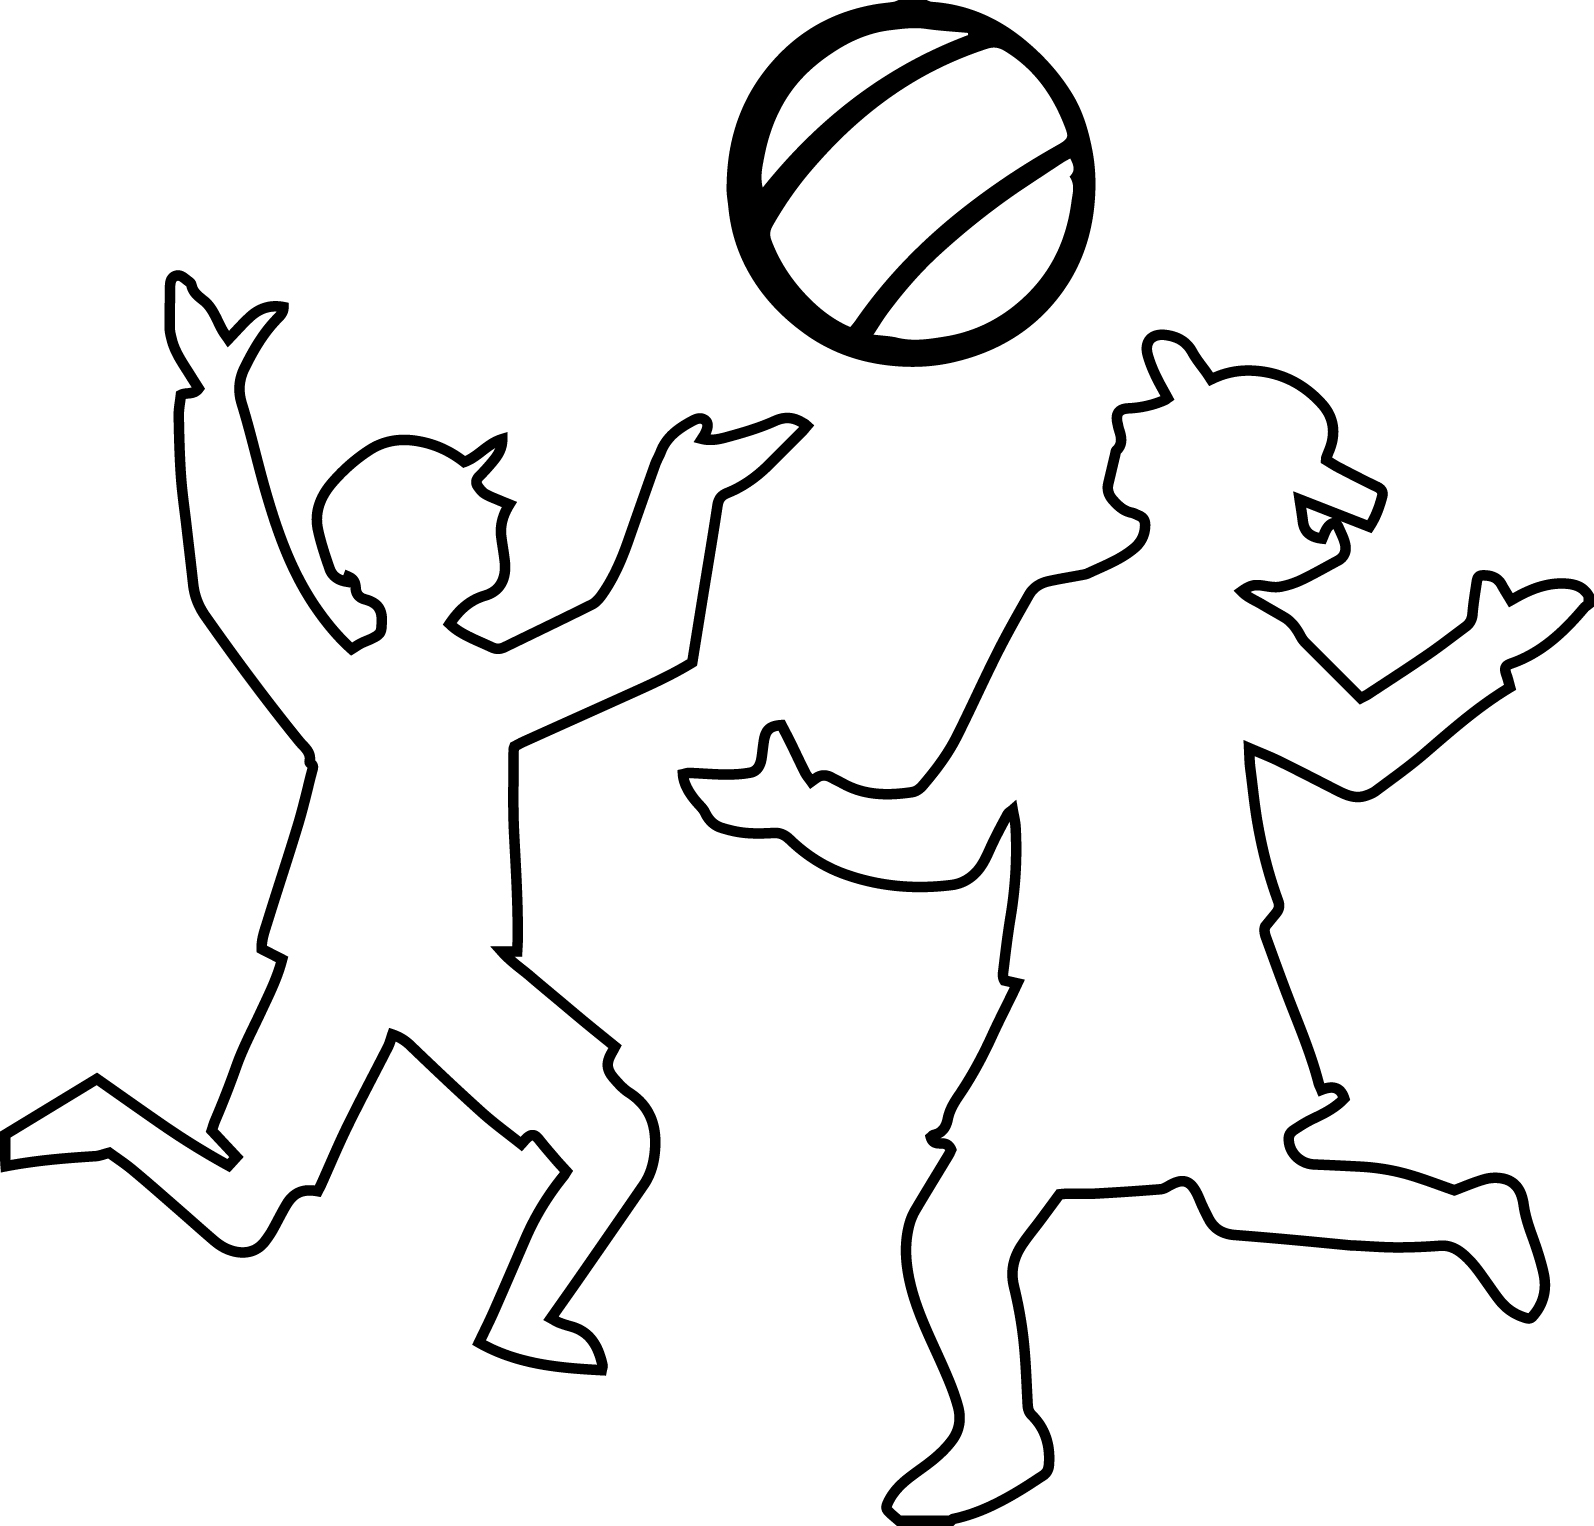 Play Voleyball Children Outline Coloring Page